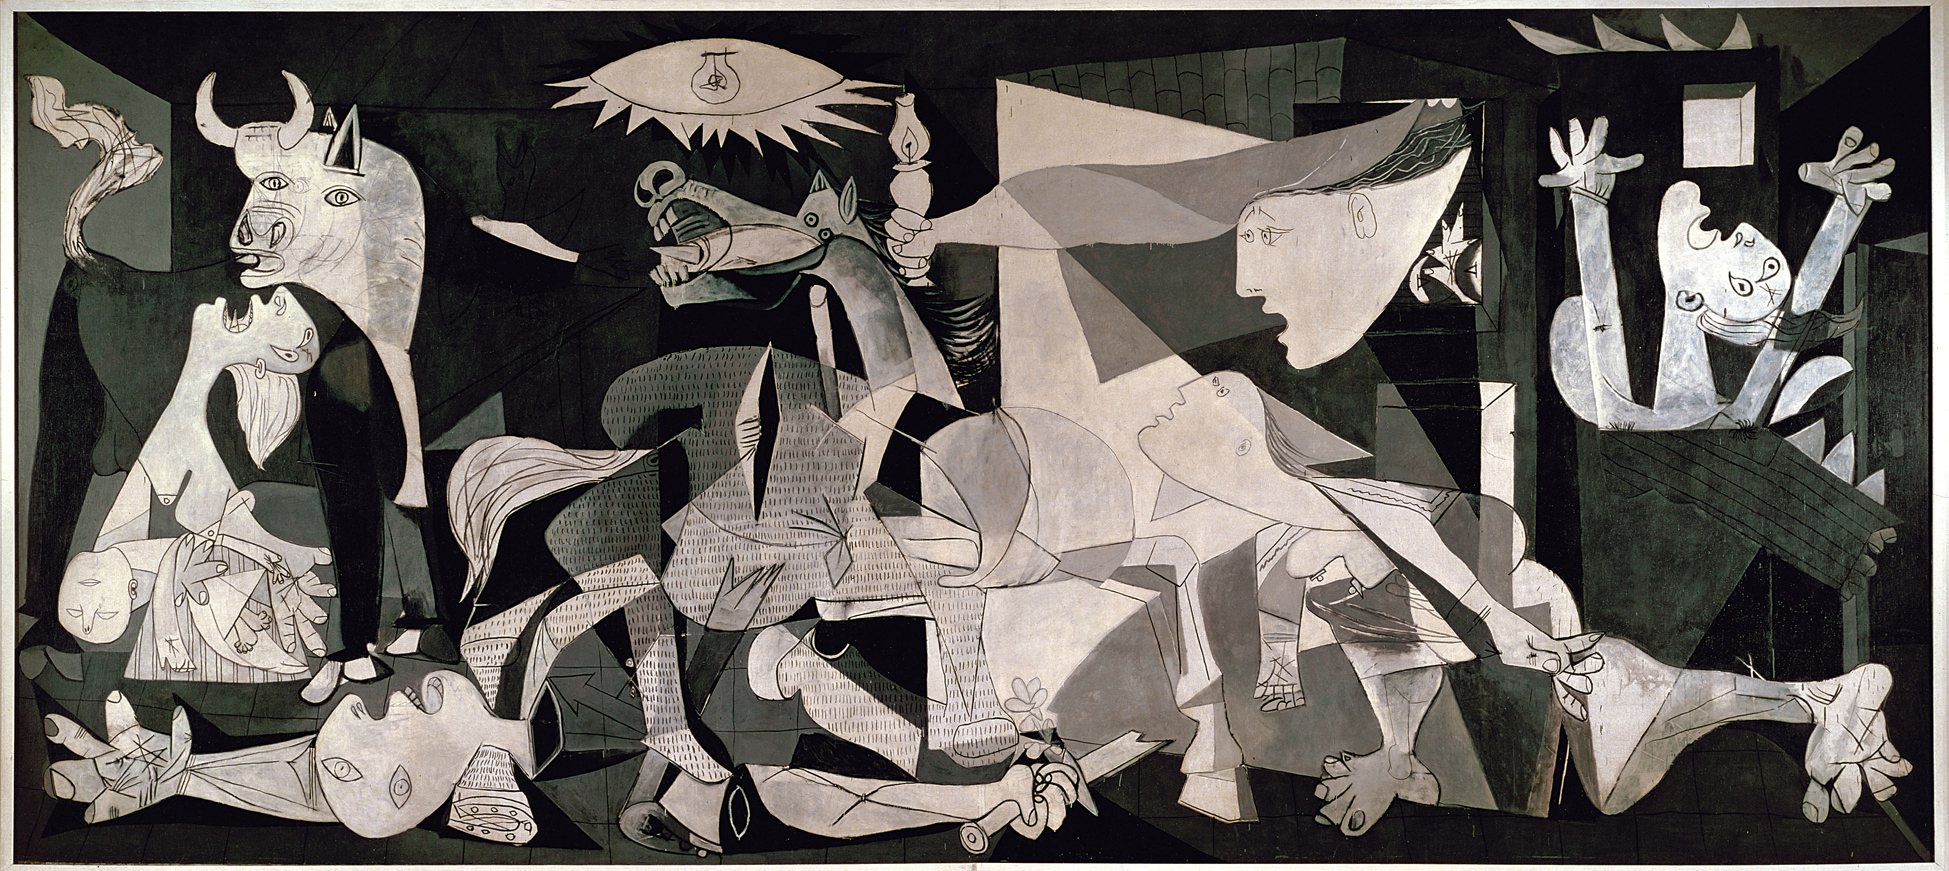 APRIL 26 = Picasso & the Death of Guernica   Today In History